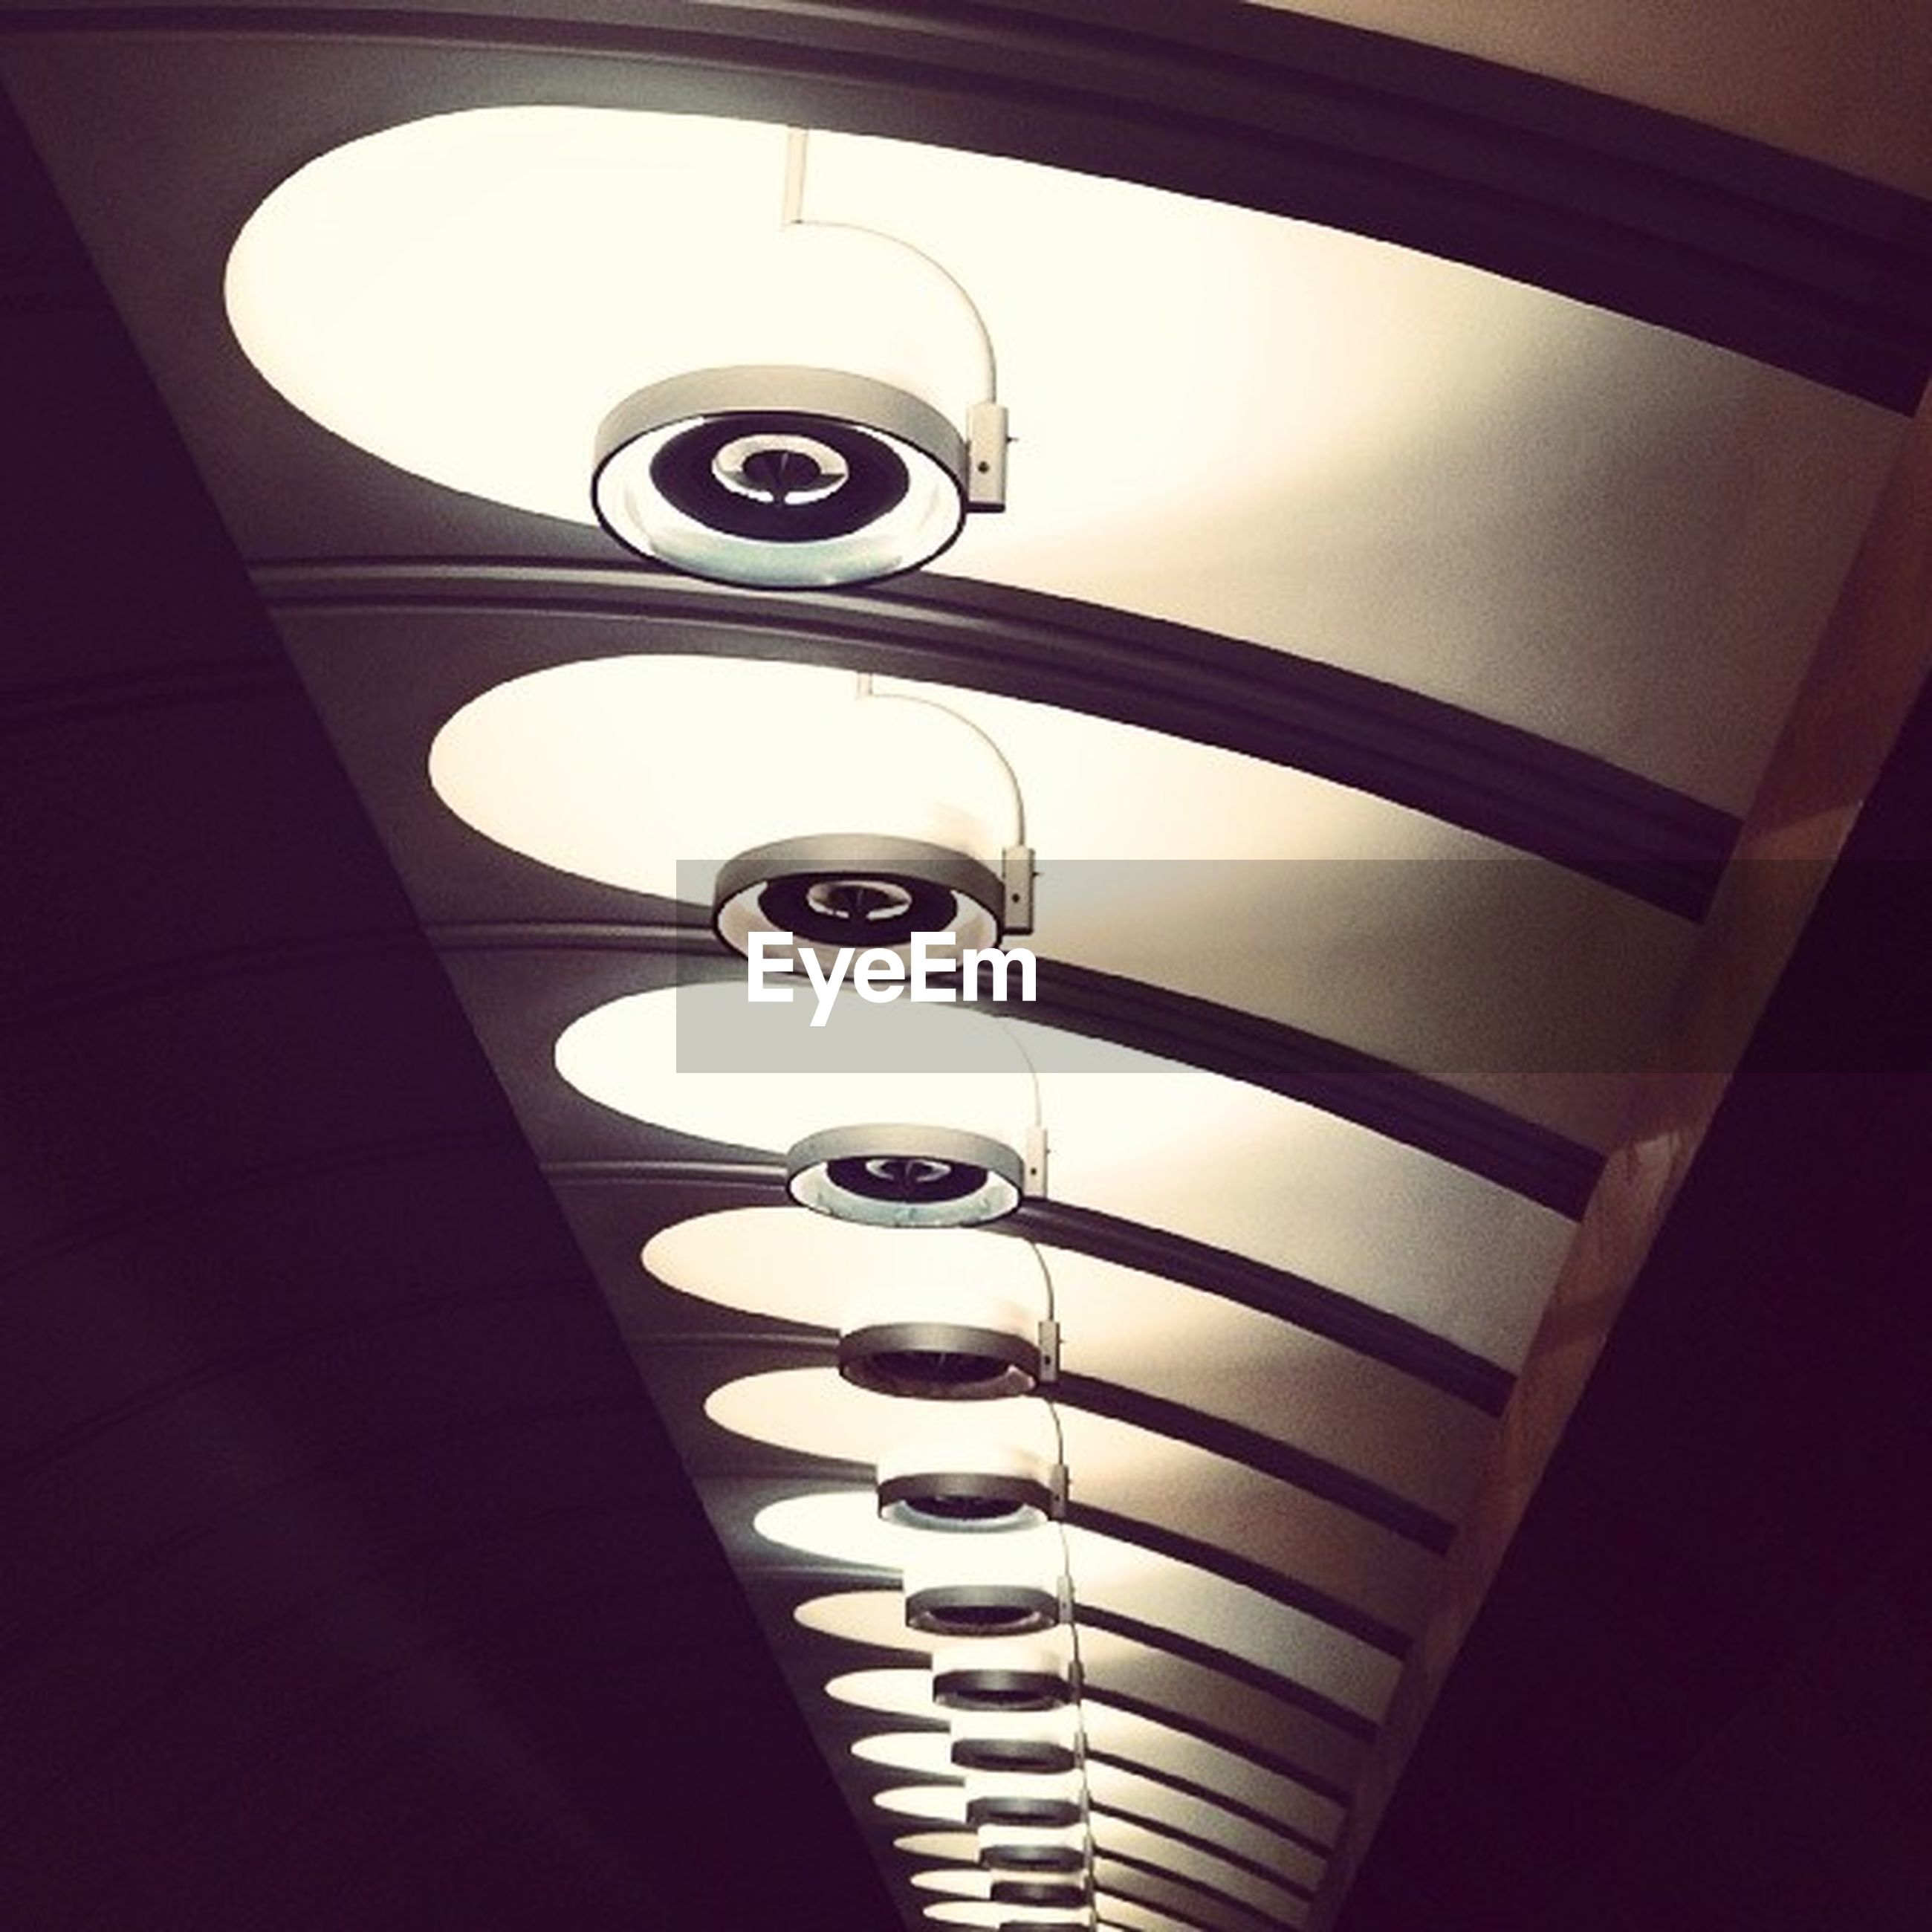 indoors, low angle view, ceiling, architecture, built structure, lighting equipment, illuminated, railing, circle, directly below, modern, pattern, electric light, staircase, geometric shape, no people, spiral, design, building, steps and staircases